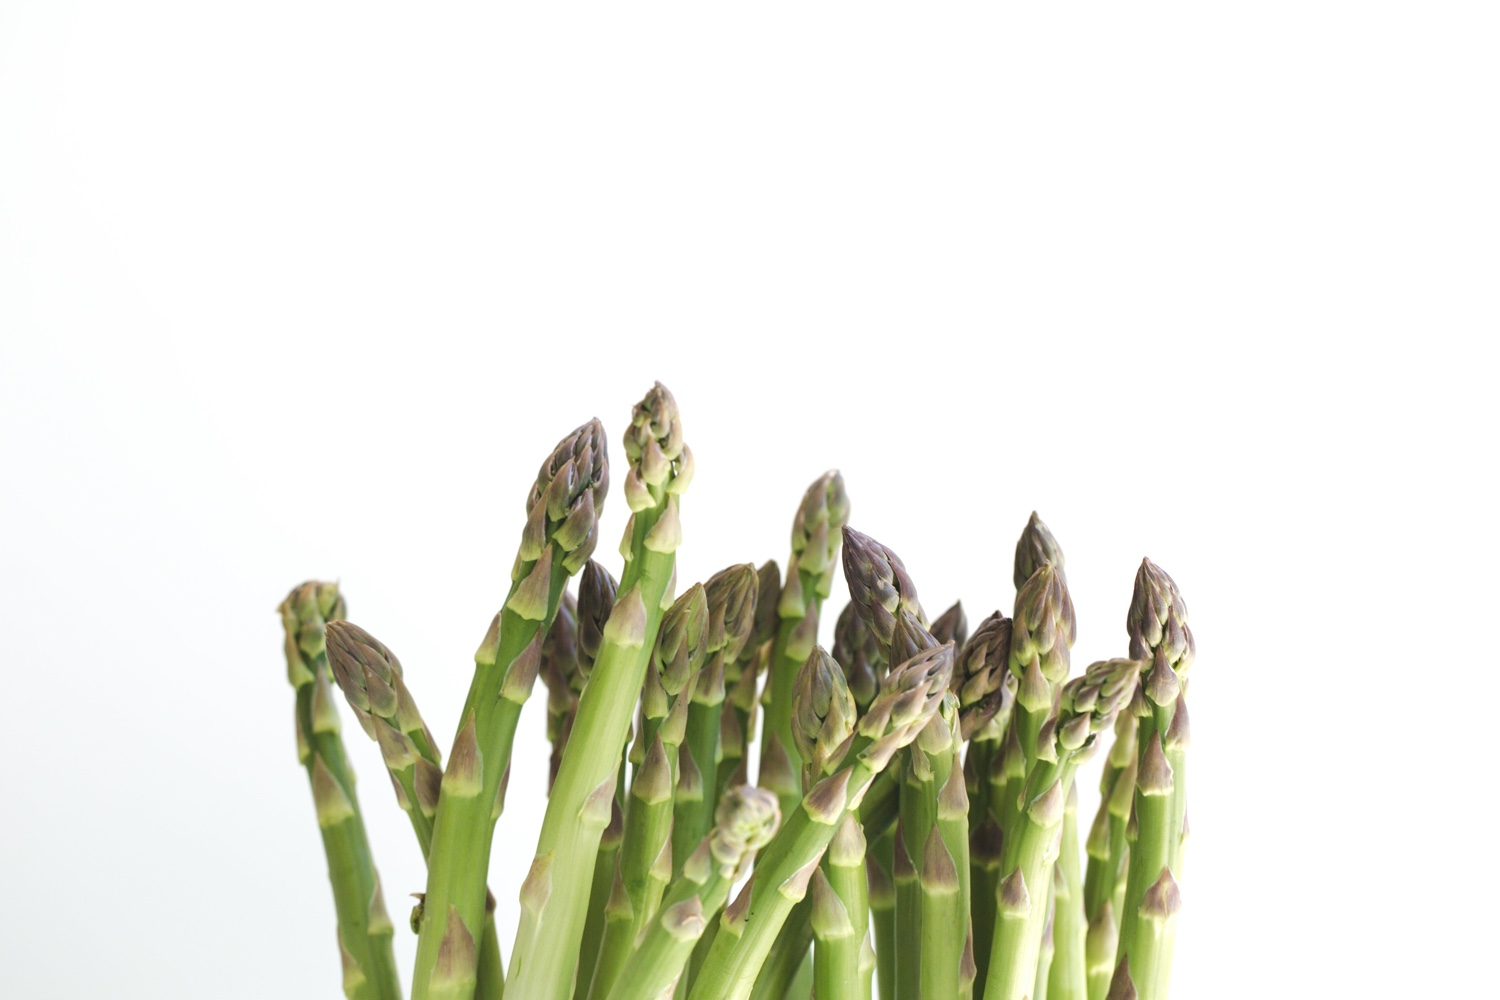 How to cook, store, pick and prepare asparagus, including simple vegan preparations, cool stories about cats and cooking and more | Brownble | Ode to asparagus